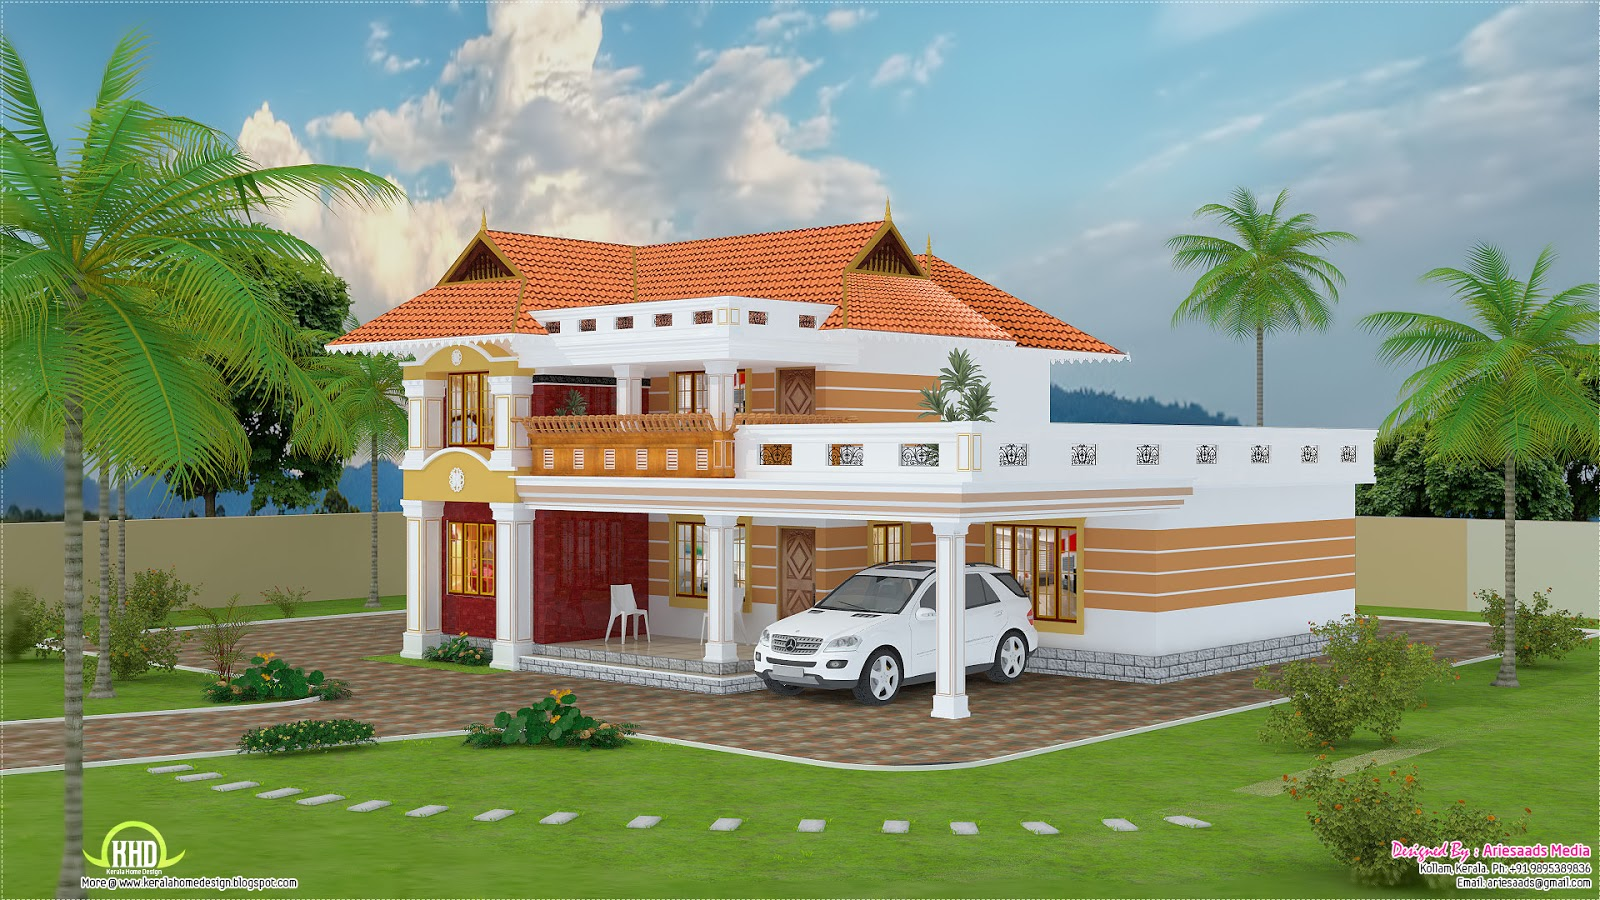 The gallery for beautiful houses in kerala below 20 lakhs - Kerala beautiful house ...